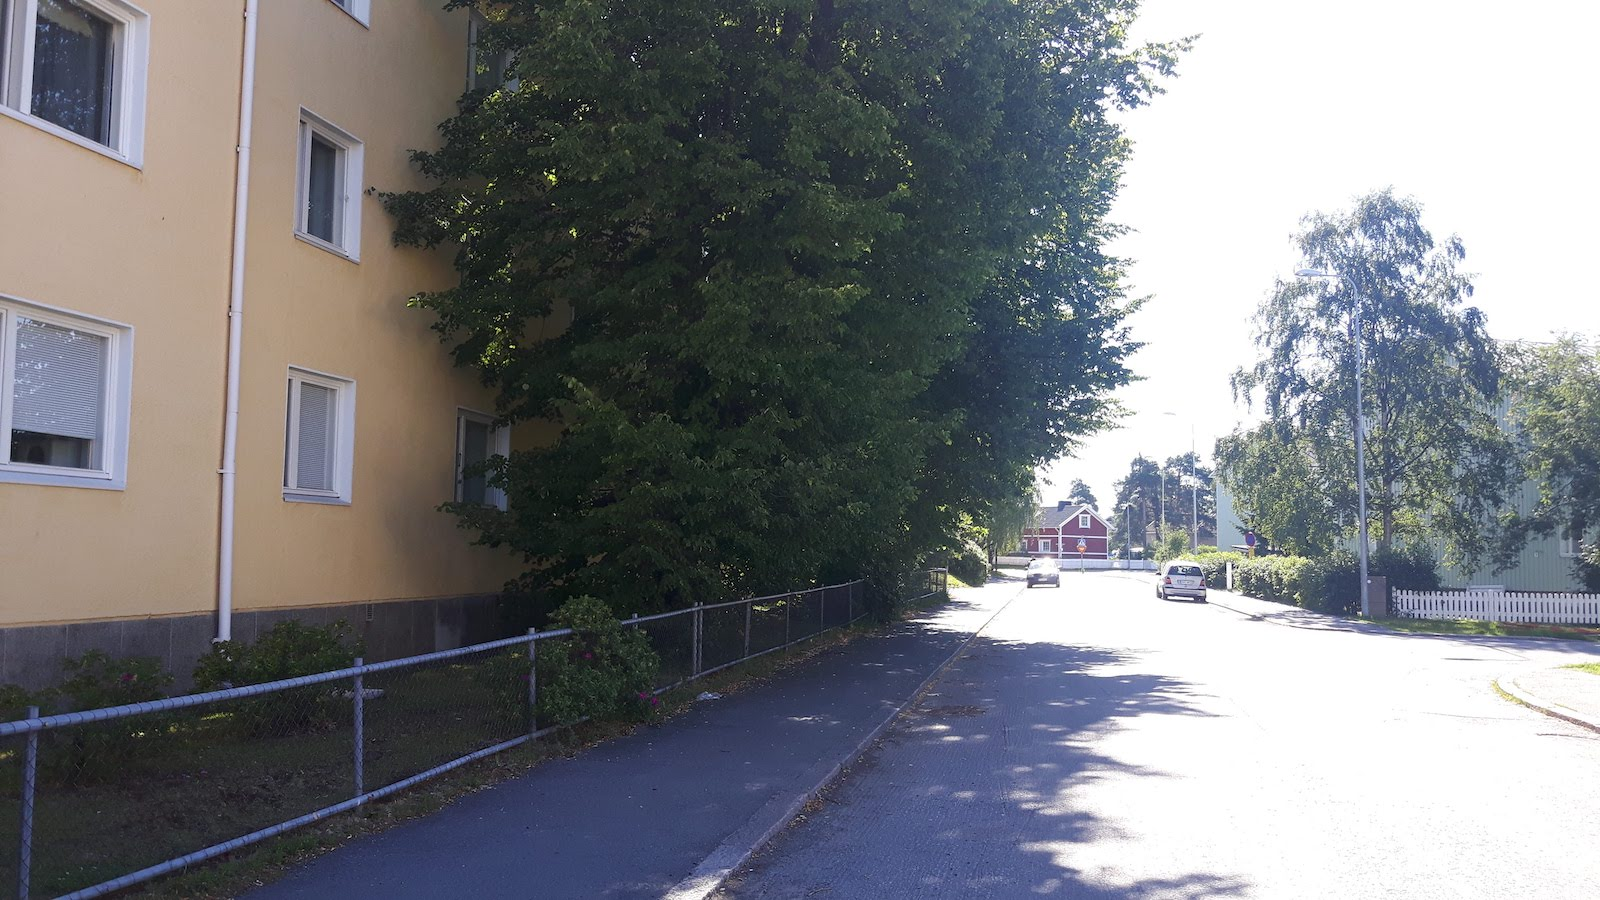 Apartment Building I stayed at Oulu Finland